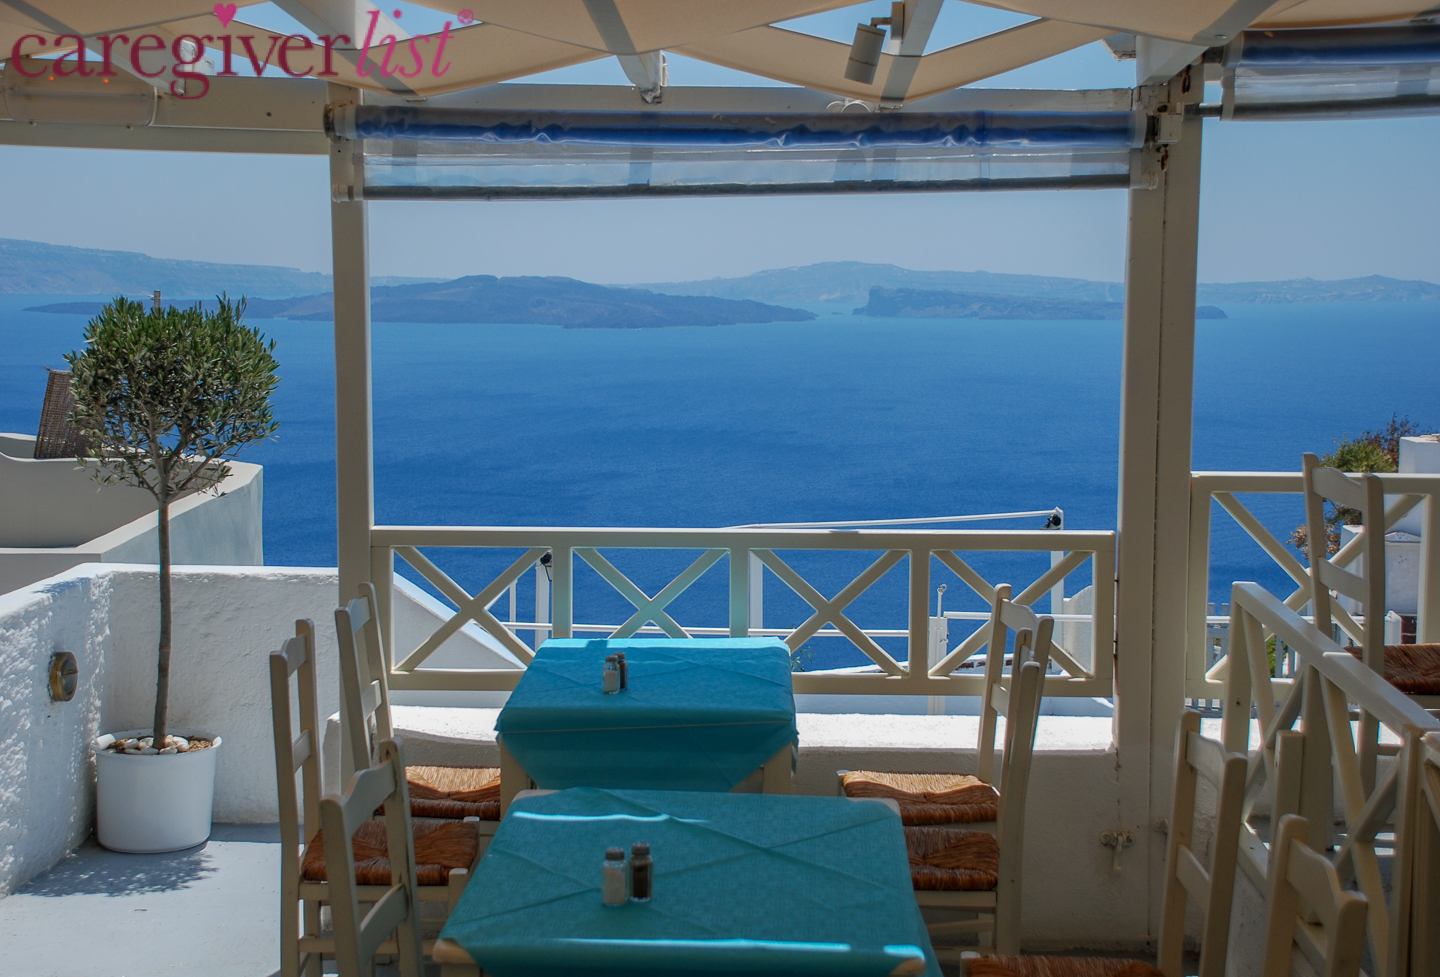 Greek Island View for Caregiver Stress Relief